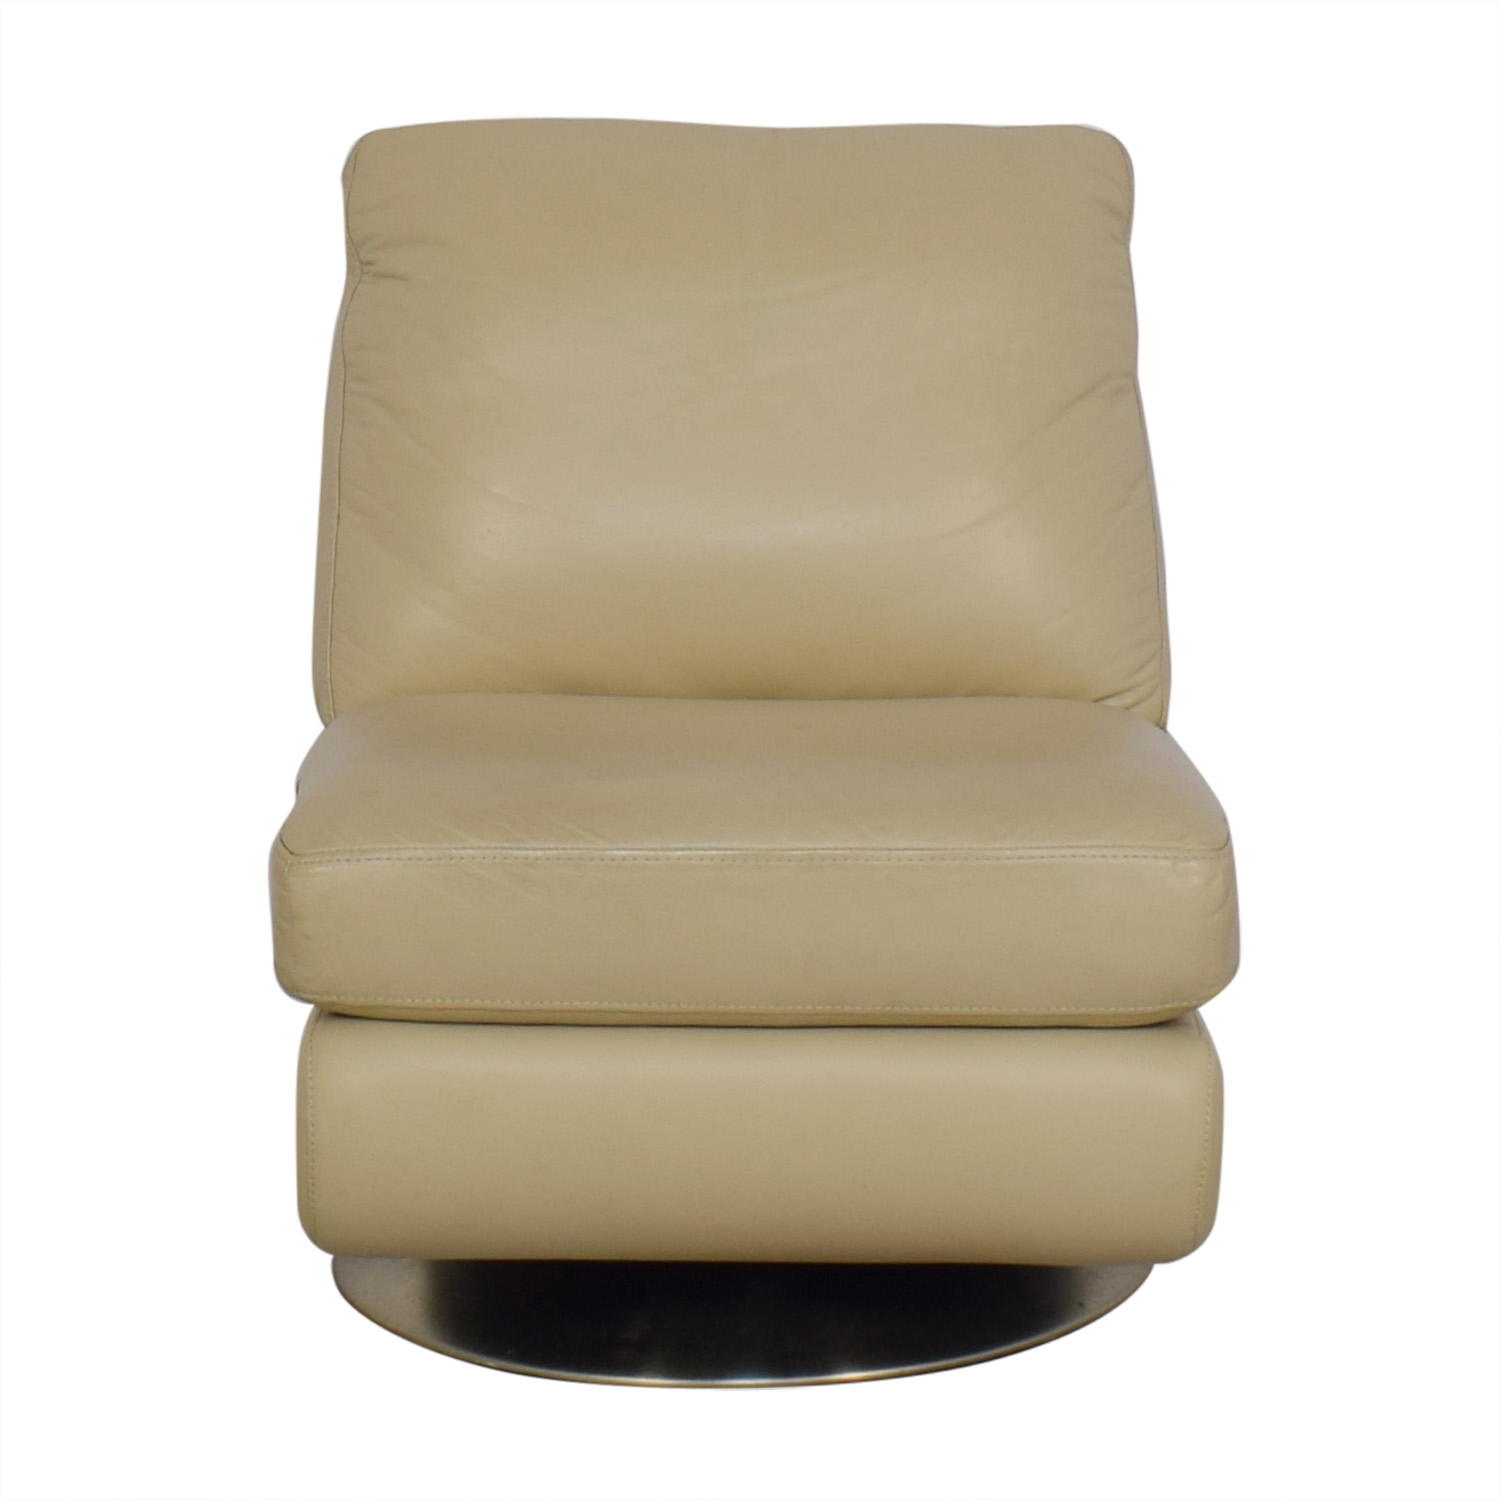 West Elm West Elm Armless Swivel Chair tan